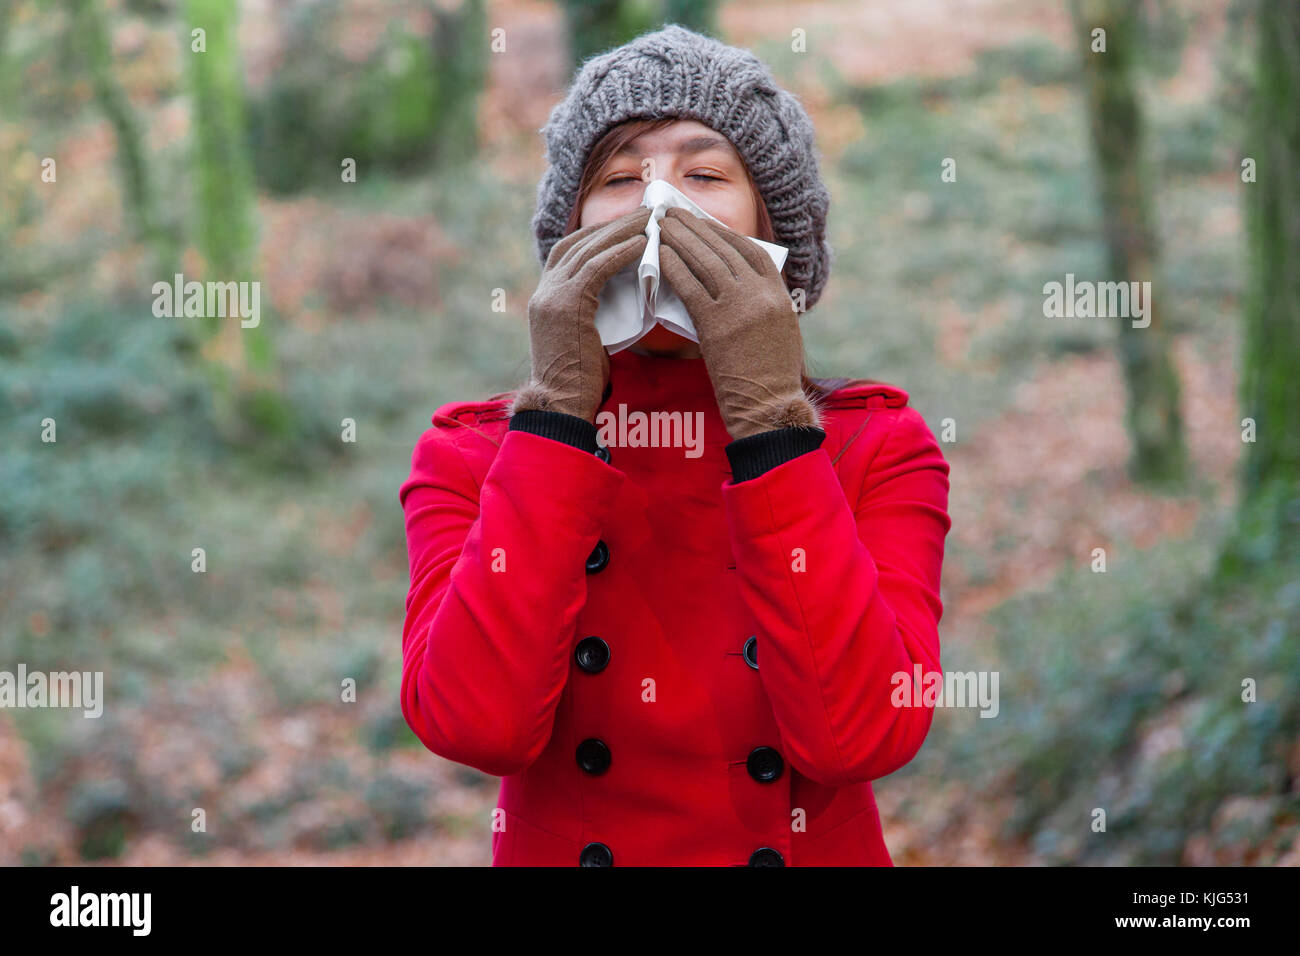 Young woman suffering from cold or flu blowing nose or sneezing on white paper handkerchief in forest wearing a - Stock Image